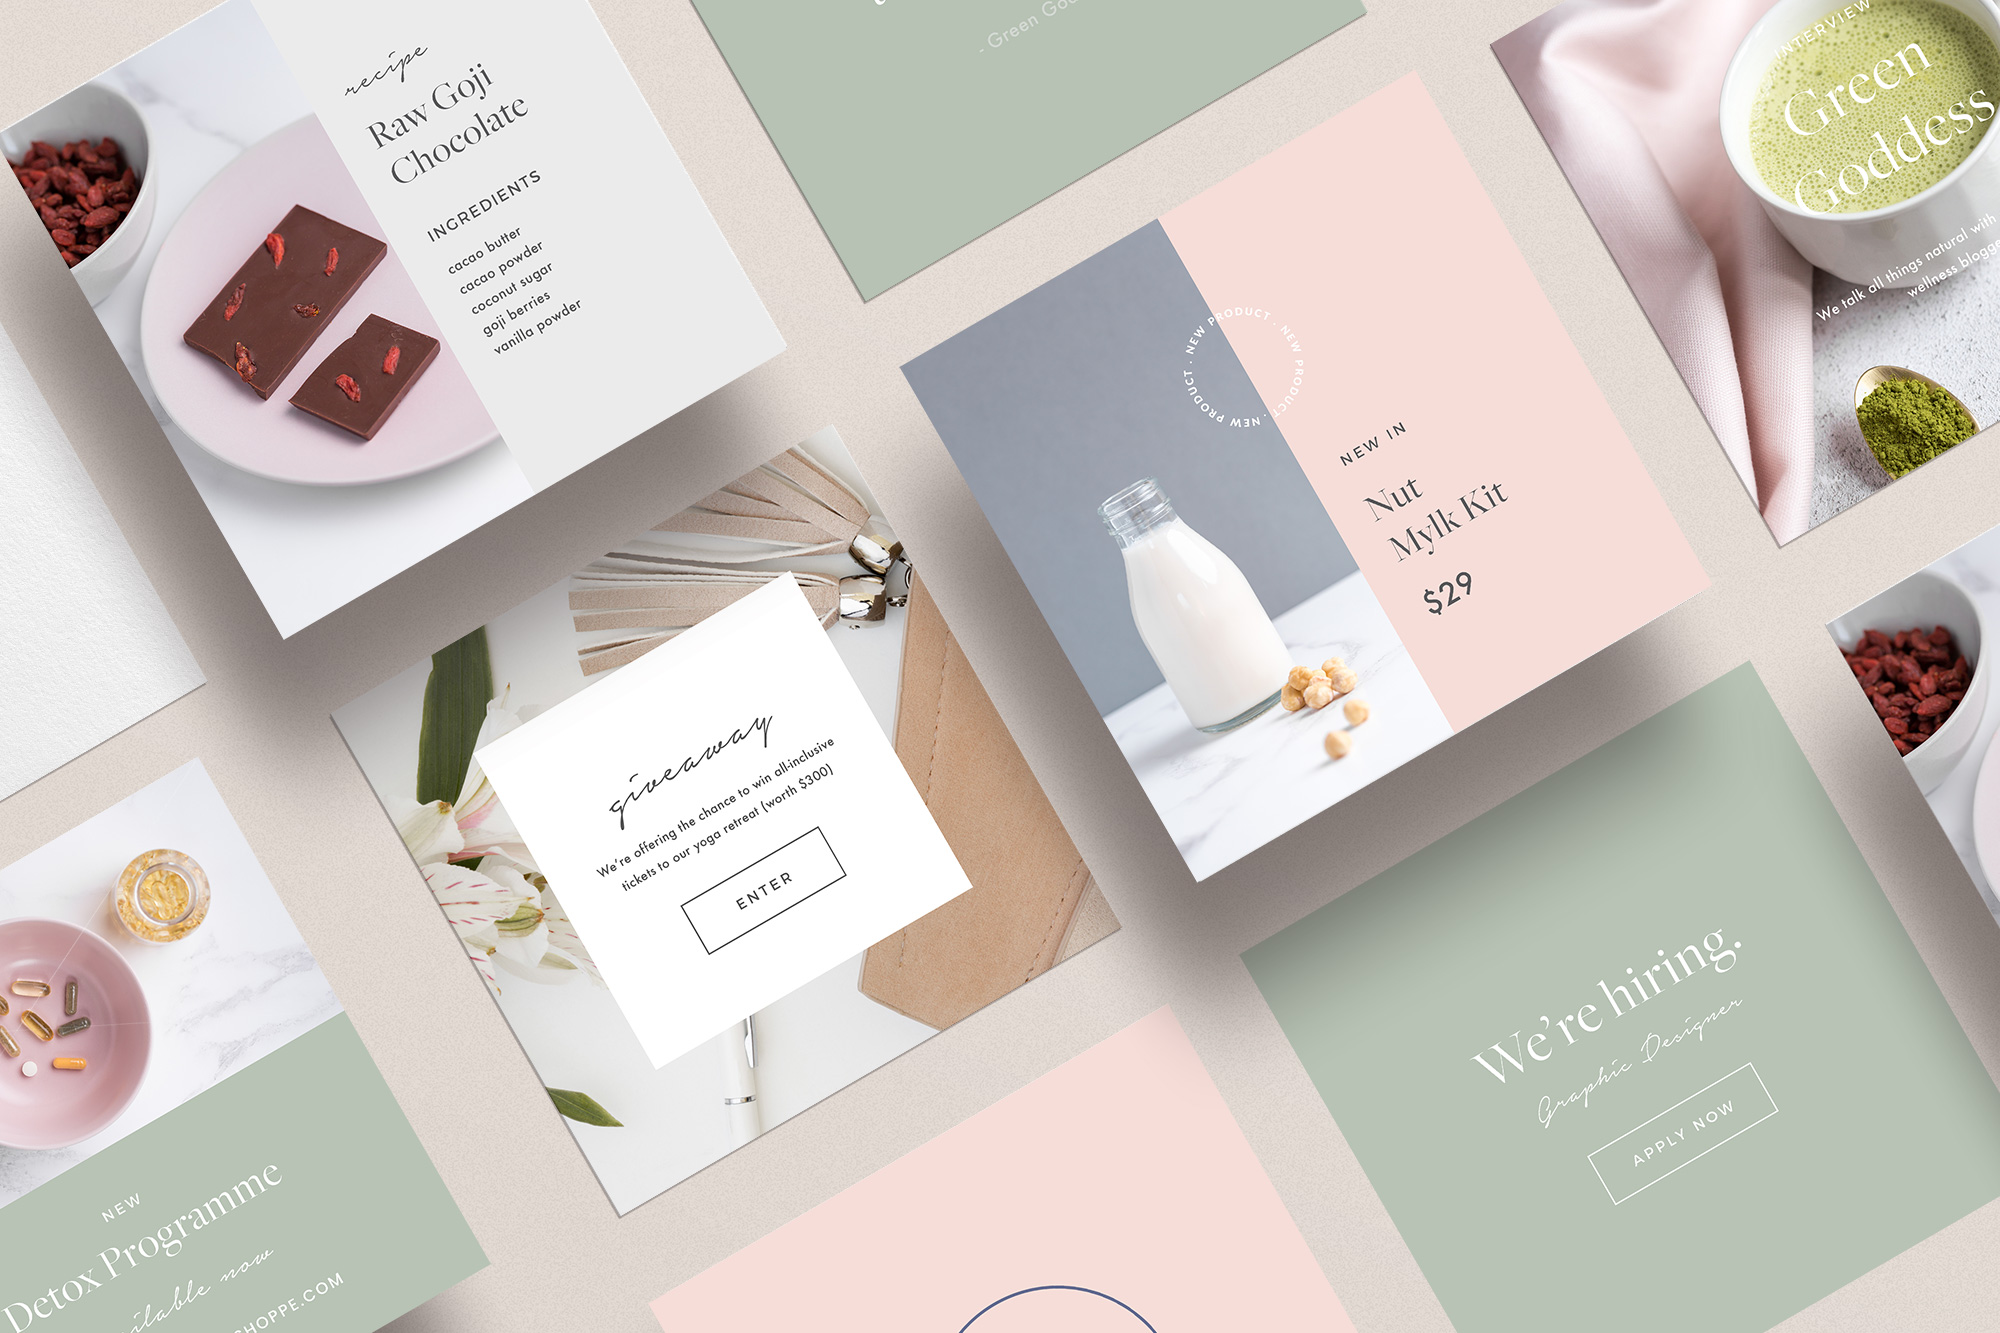 Bonus: Social Media Templates - If you schedule your build before October 1st, 2019, you'll receive a set of 15 branded social media templates that compliment your design theme as our gift to you.